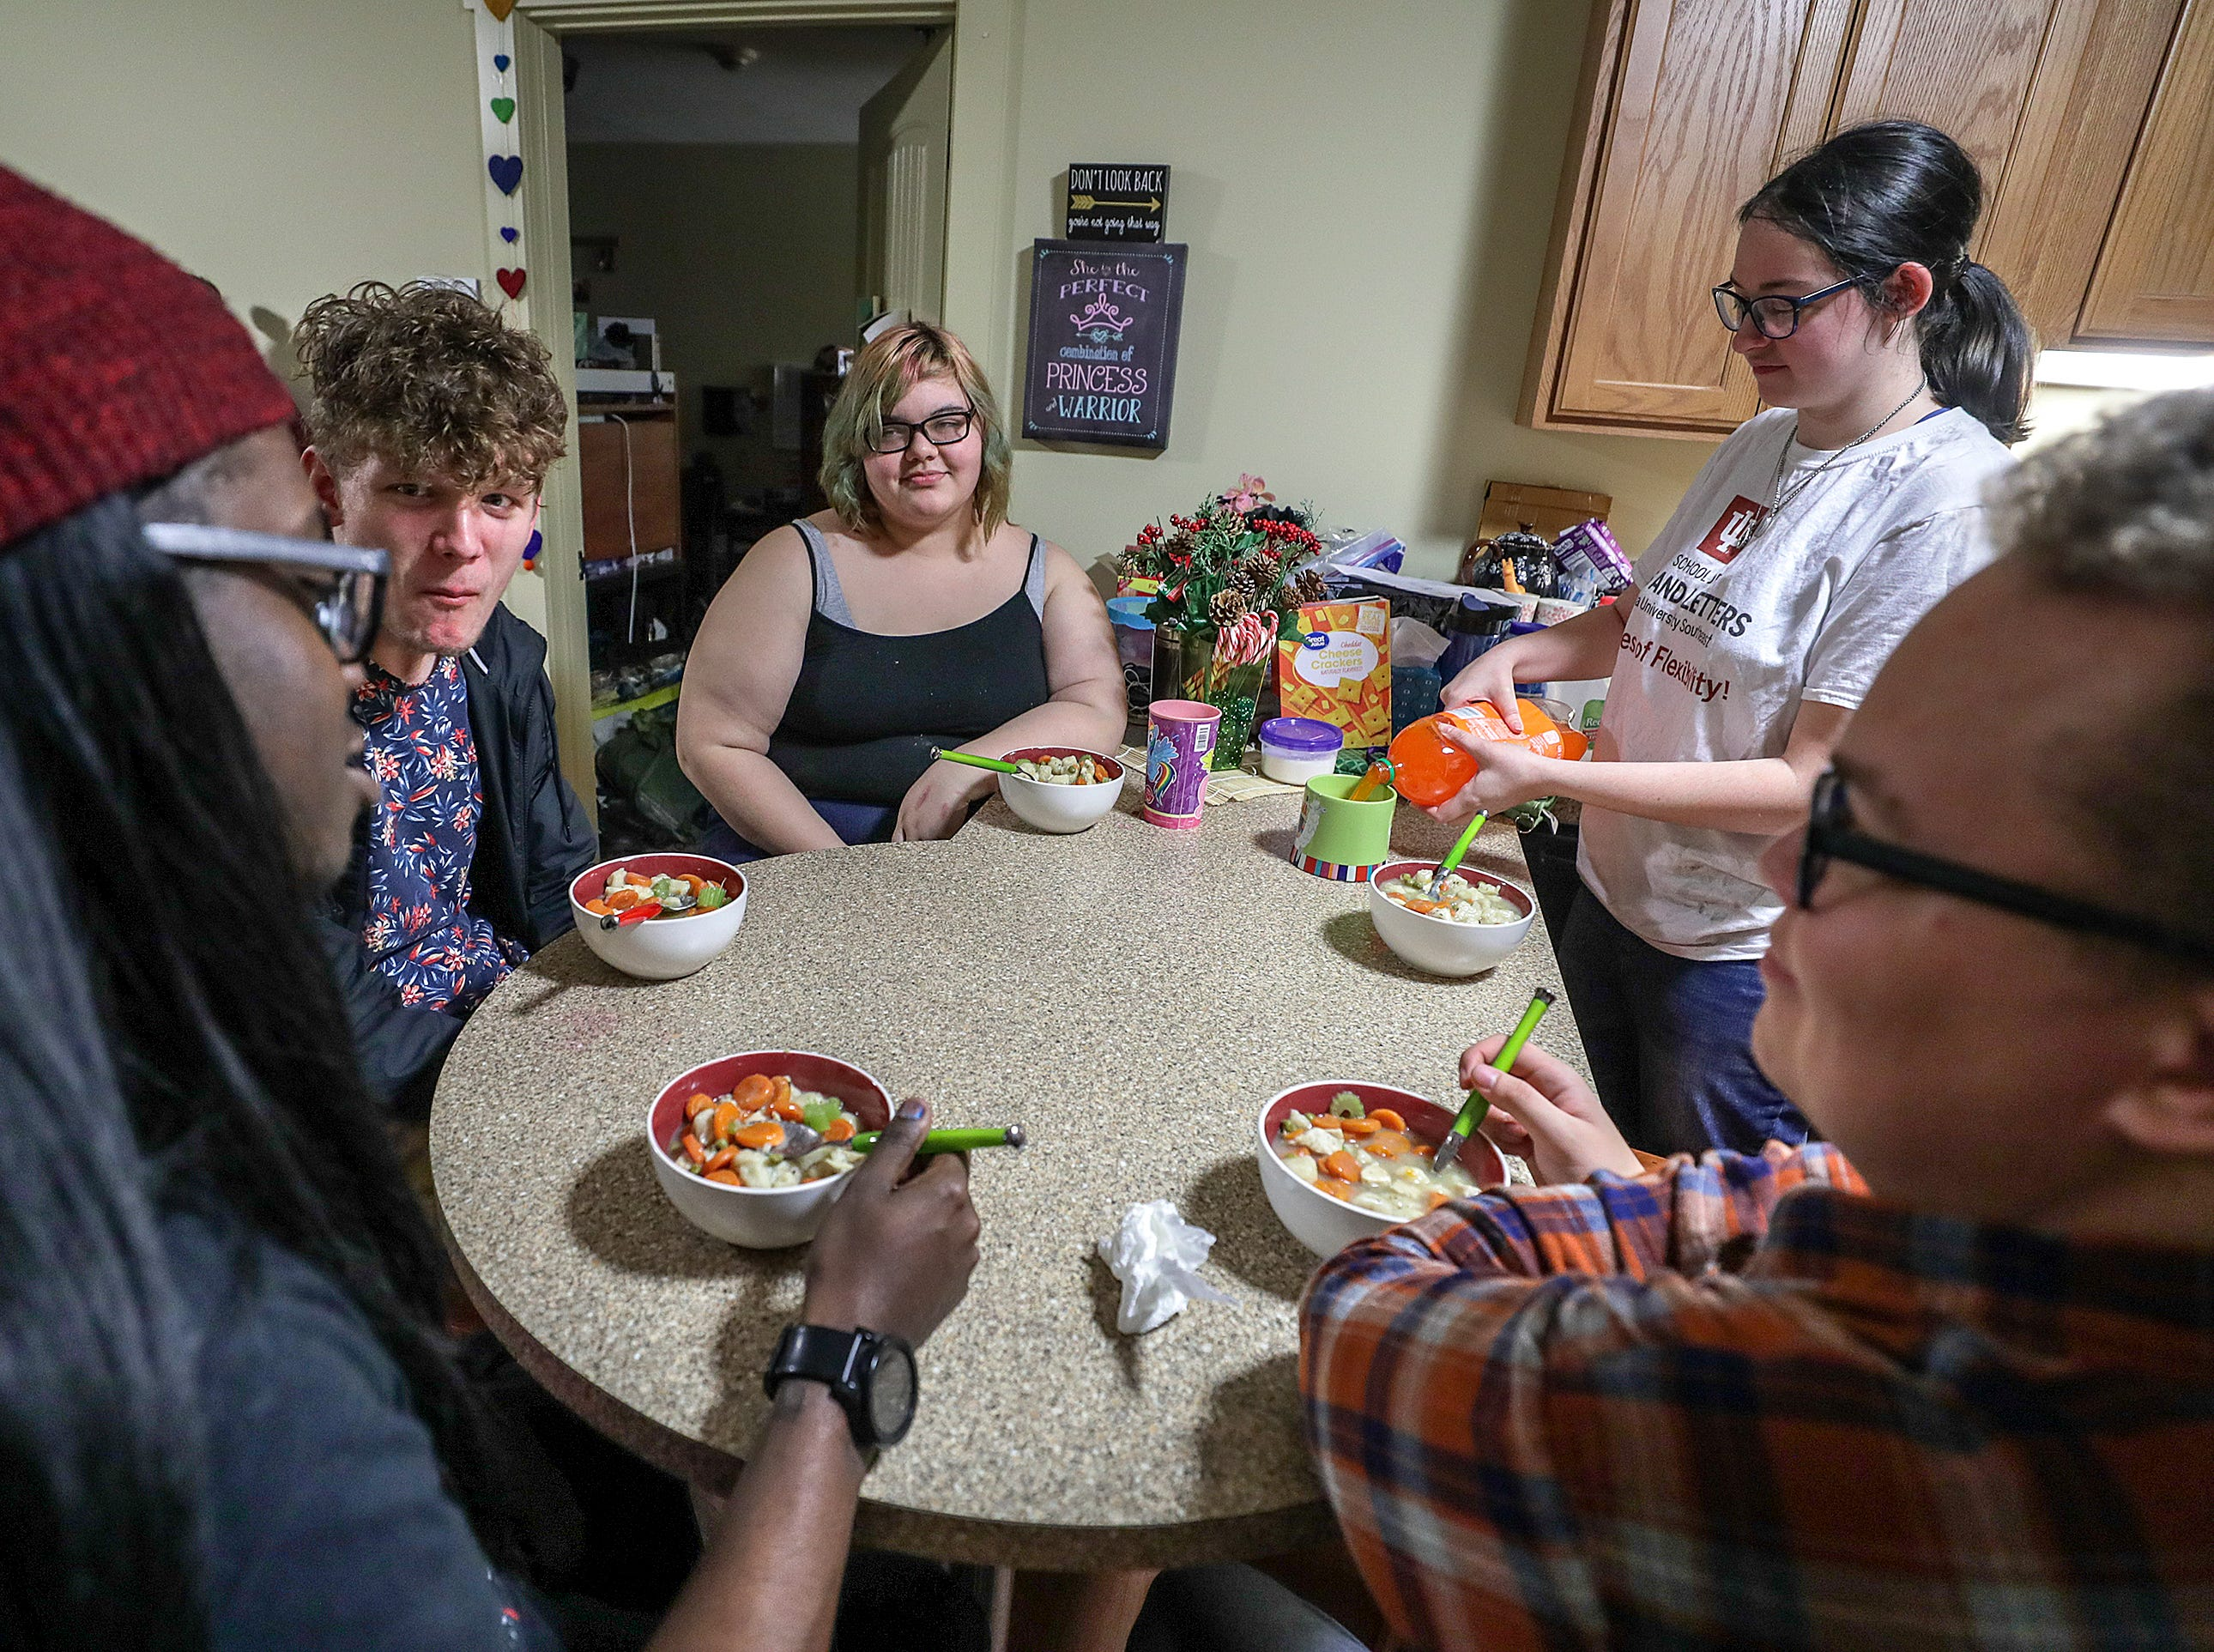 IUS students Brianna Reynolds, Johnie Adams, Stephon Camp, Josiah Pohl, and Jeanette Hansen eat together in their campus housing with some of the food the received from the campus food bank.February 5, 2019